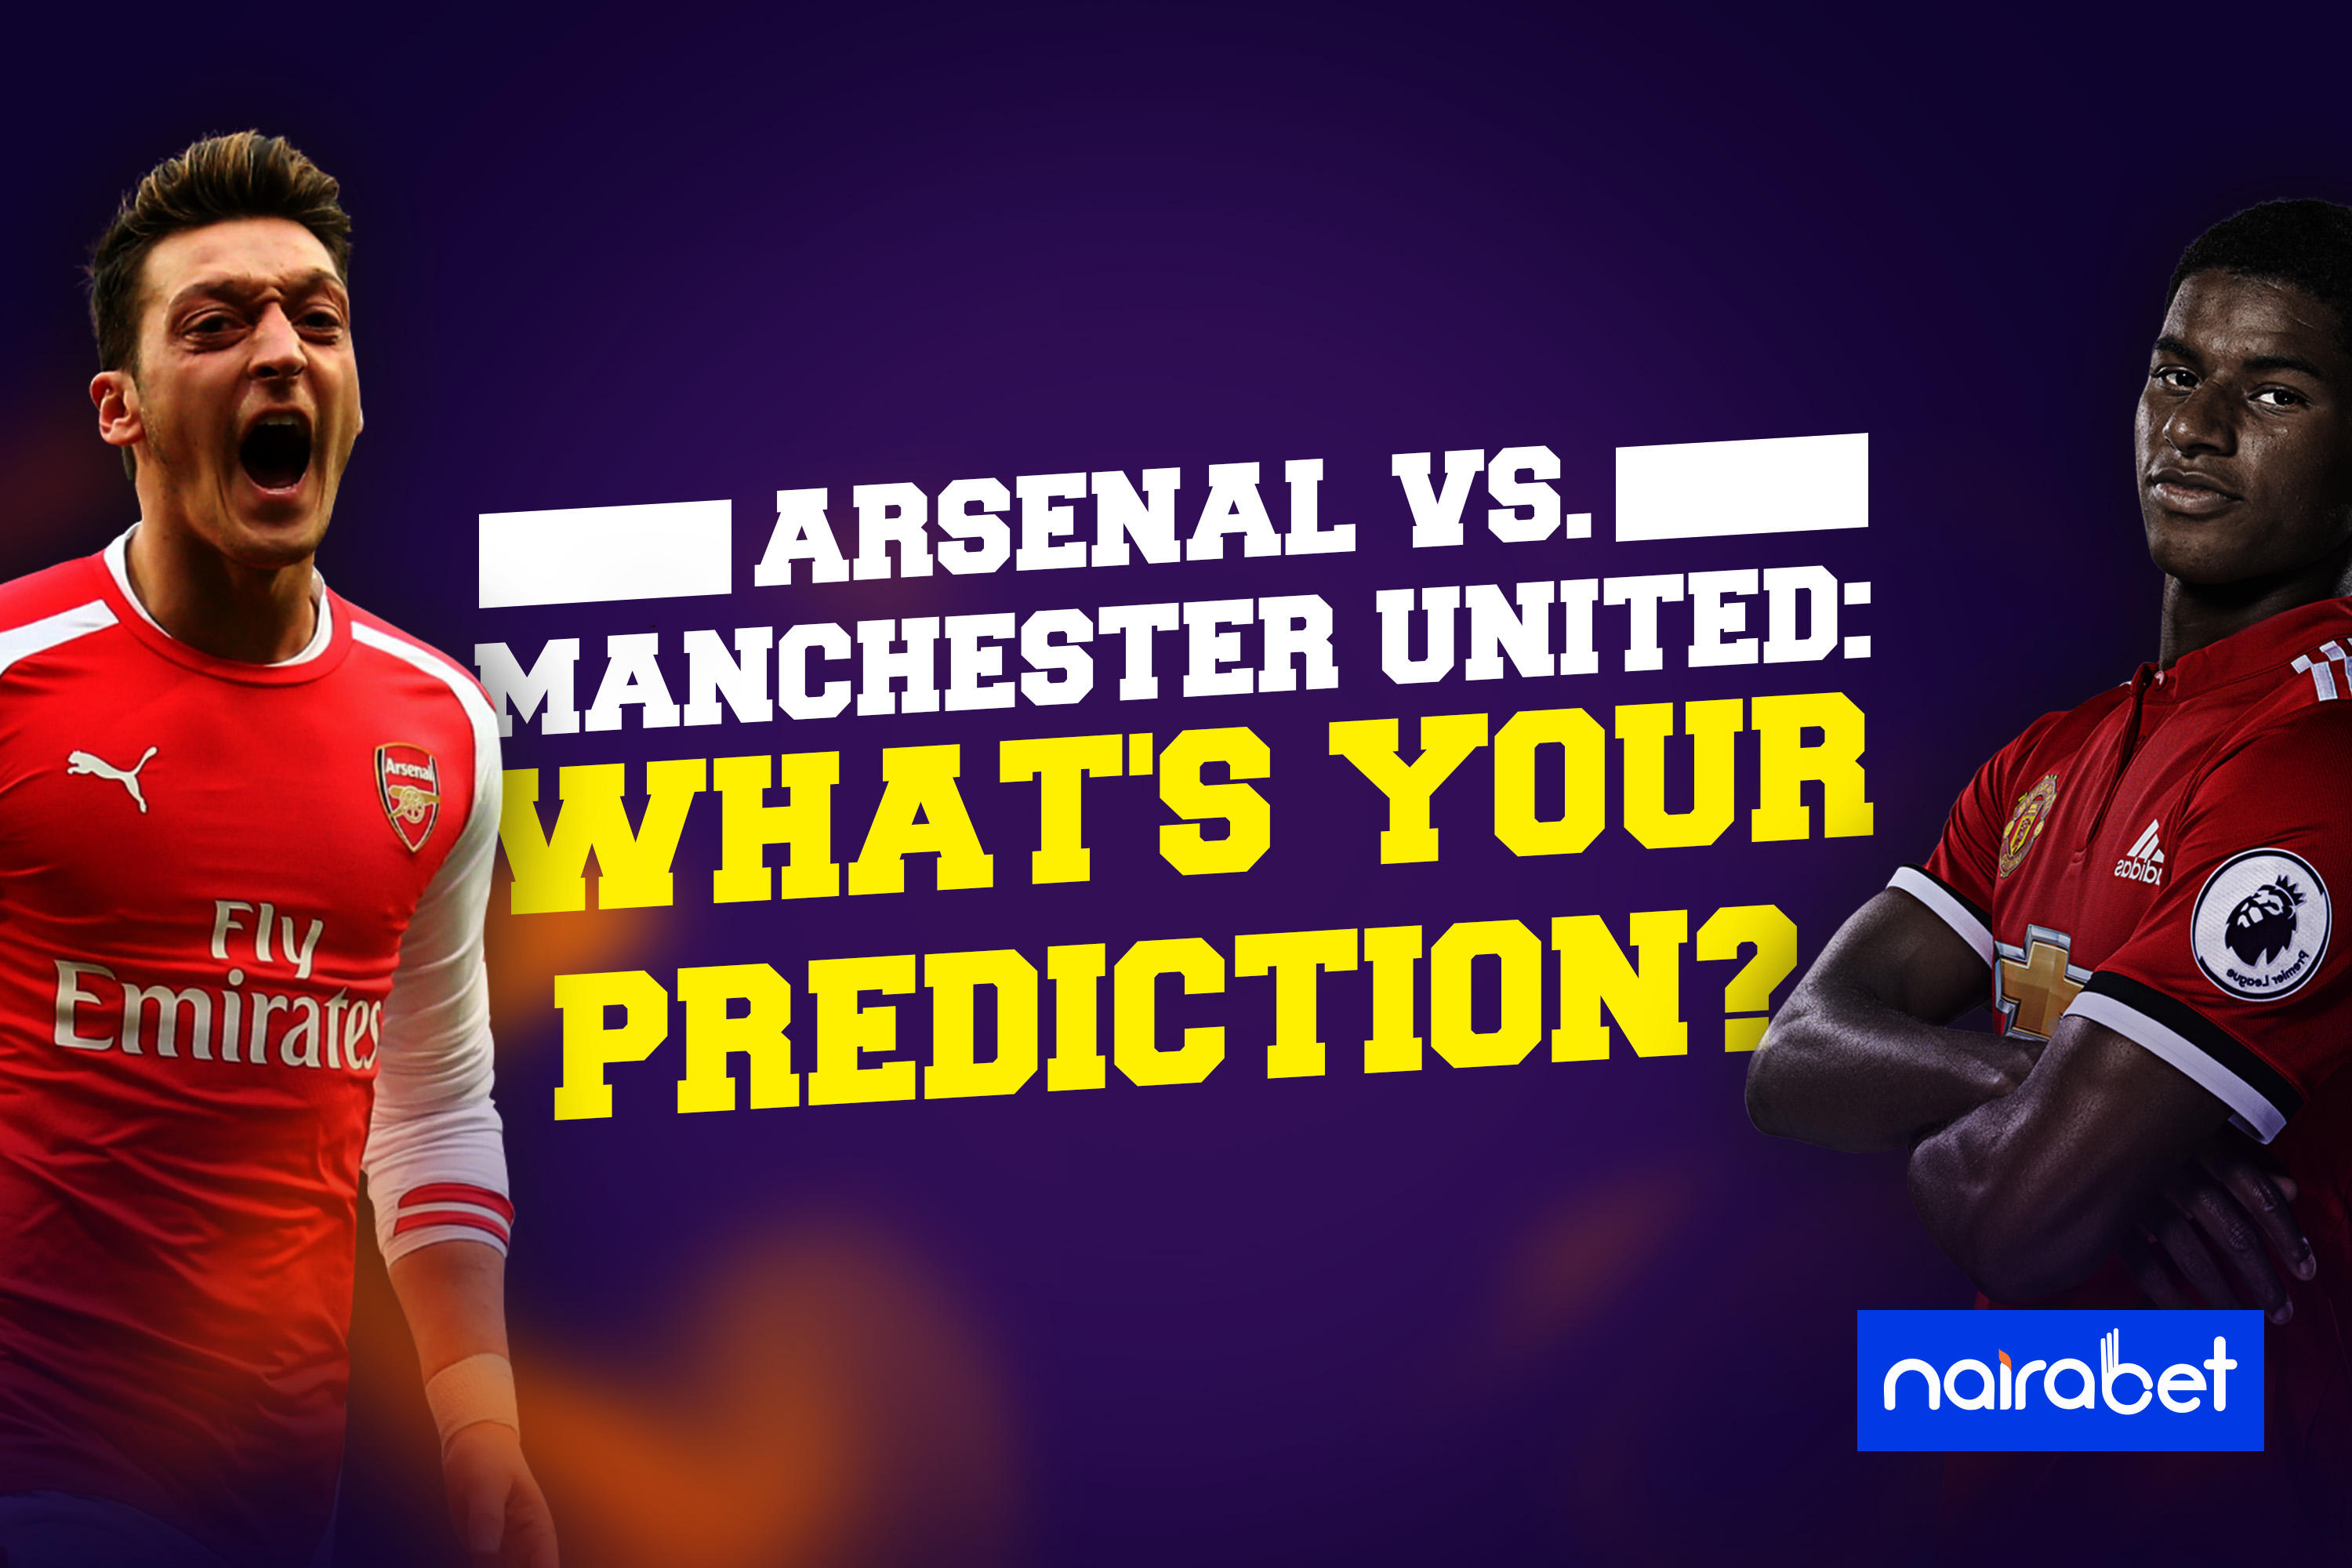 Arsenal vs Man Utd prediction